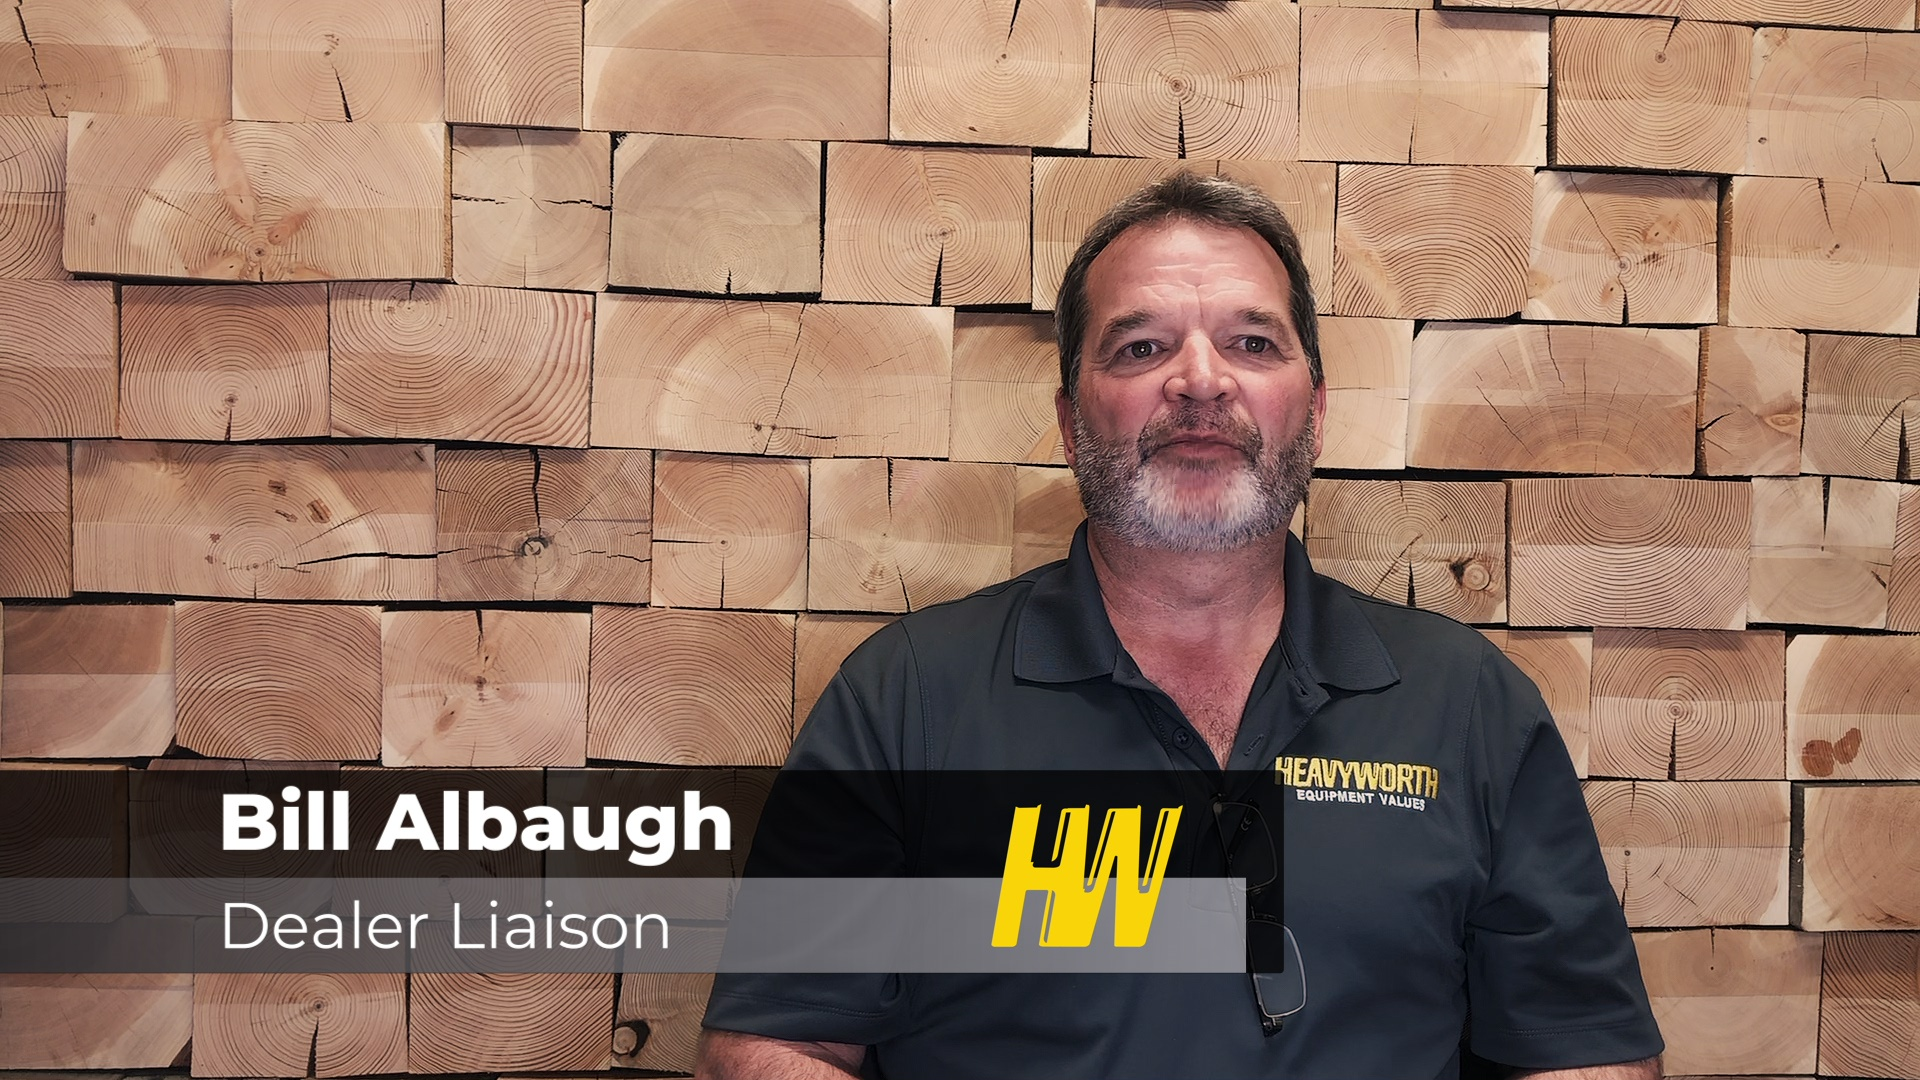 Bill Albaugh explains why pictures are important for equipment valuations